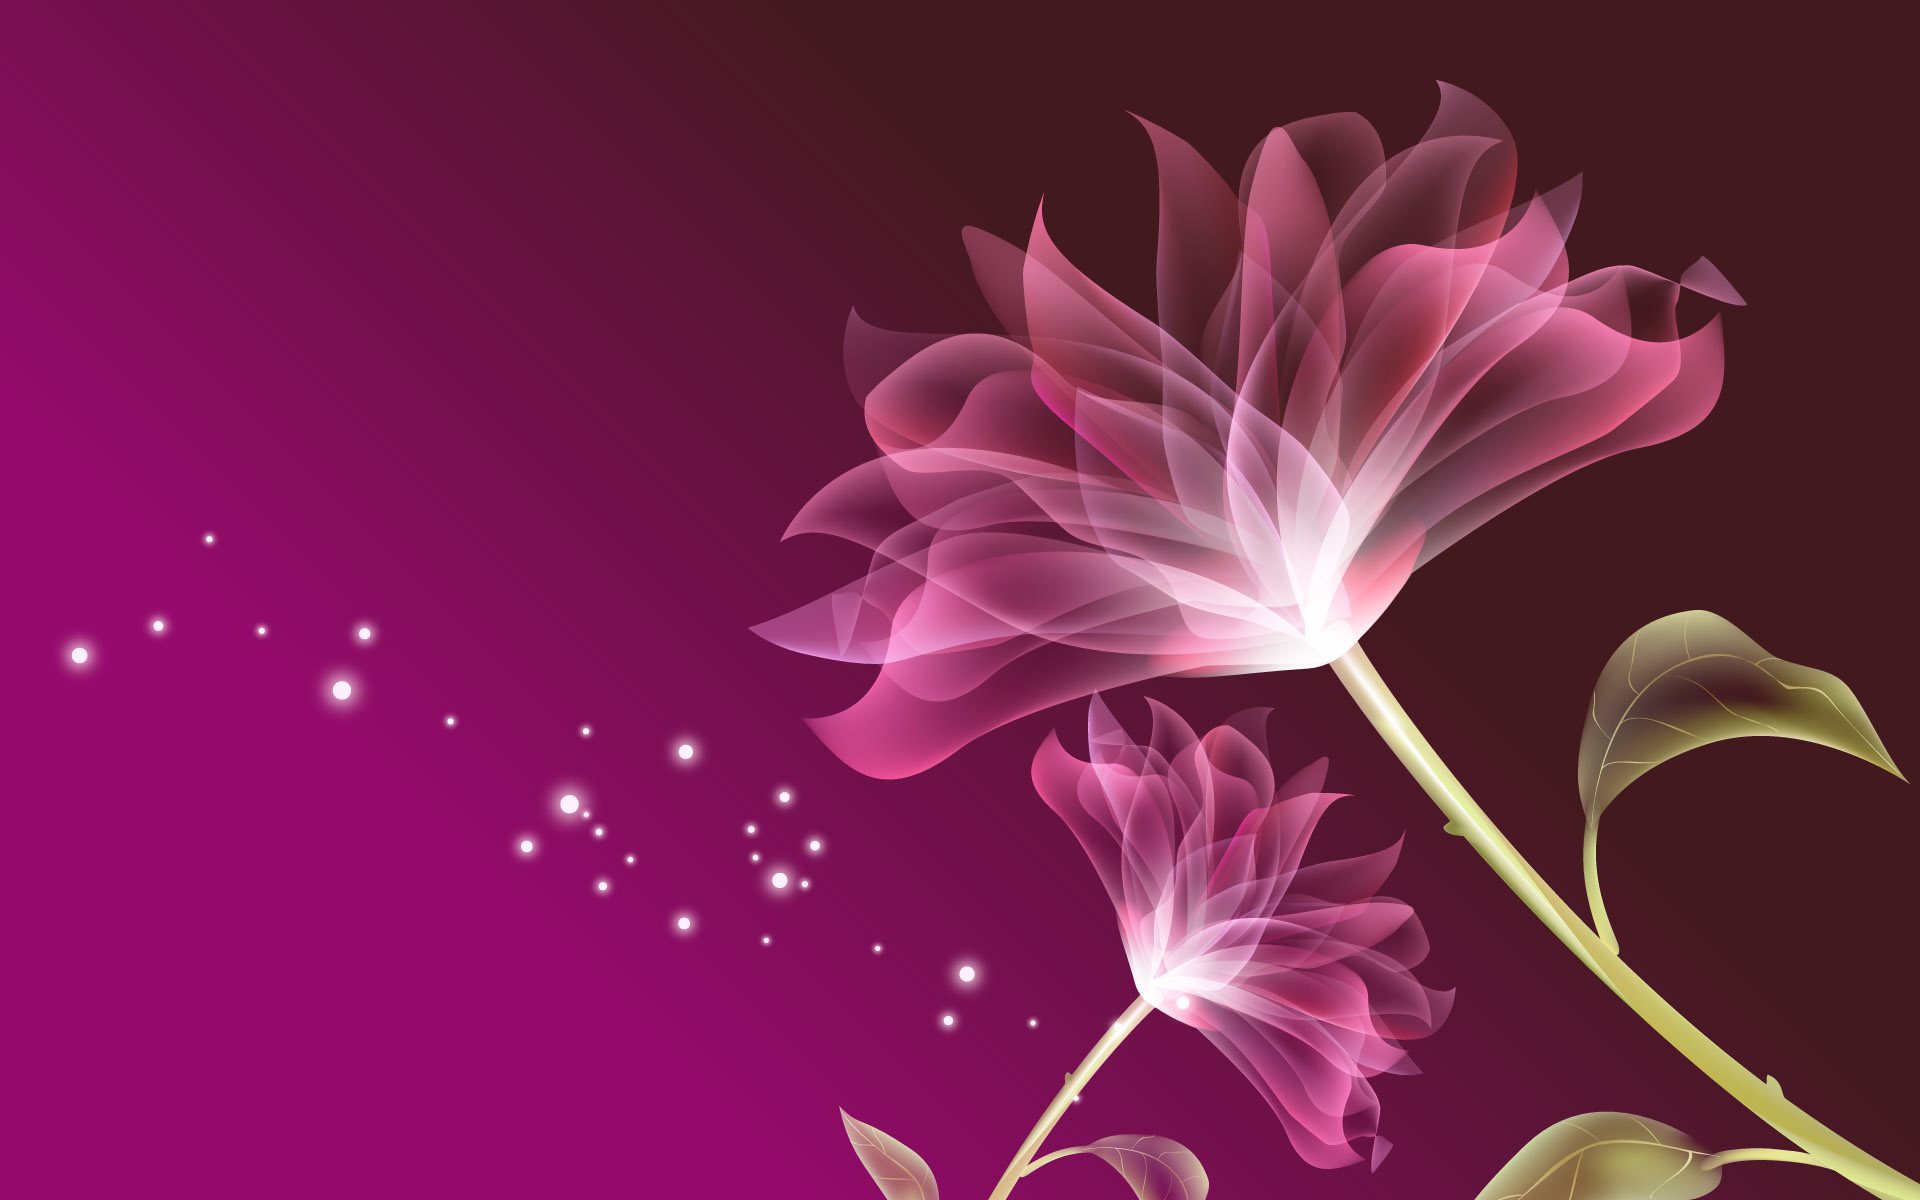 Flowers Wallpapers, FHDQ Wallpaper